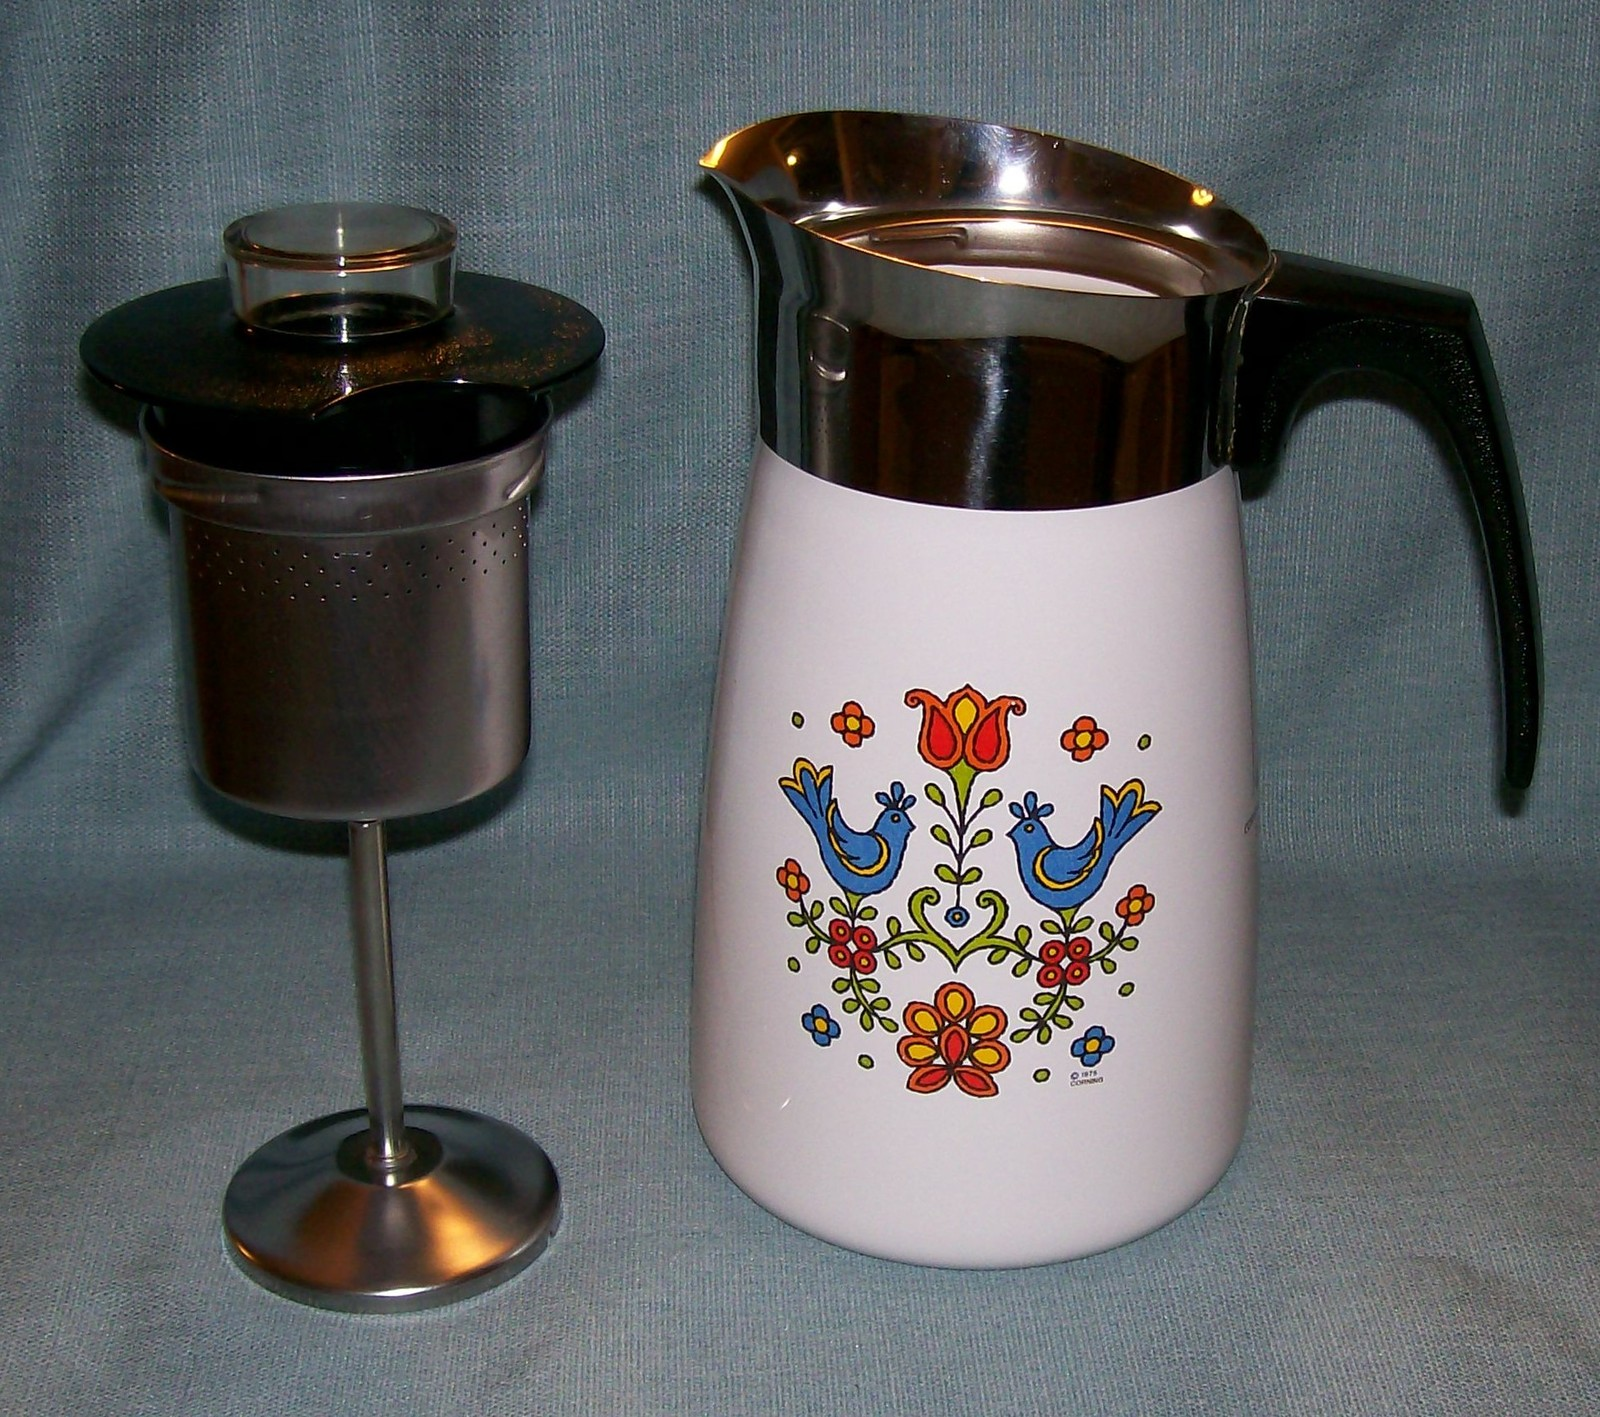 Vtg Corning COUNTRY FESTIVAL Friendship Stove Top 10 Cup Percolator P149 Birds